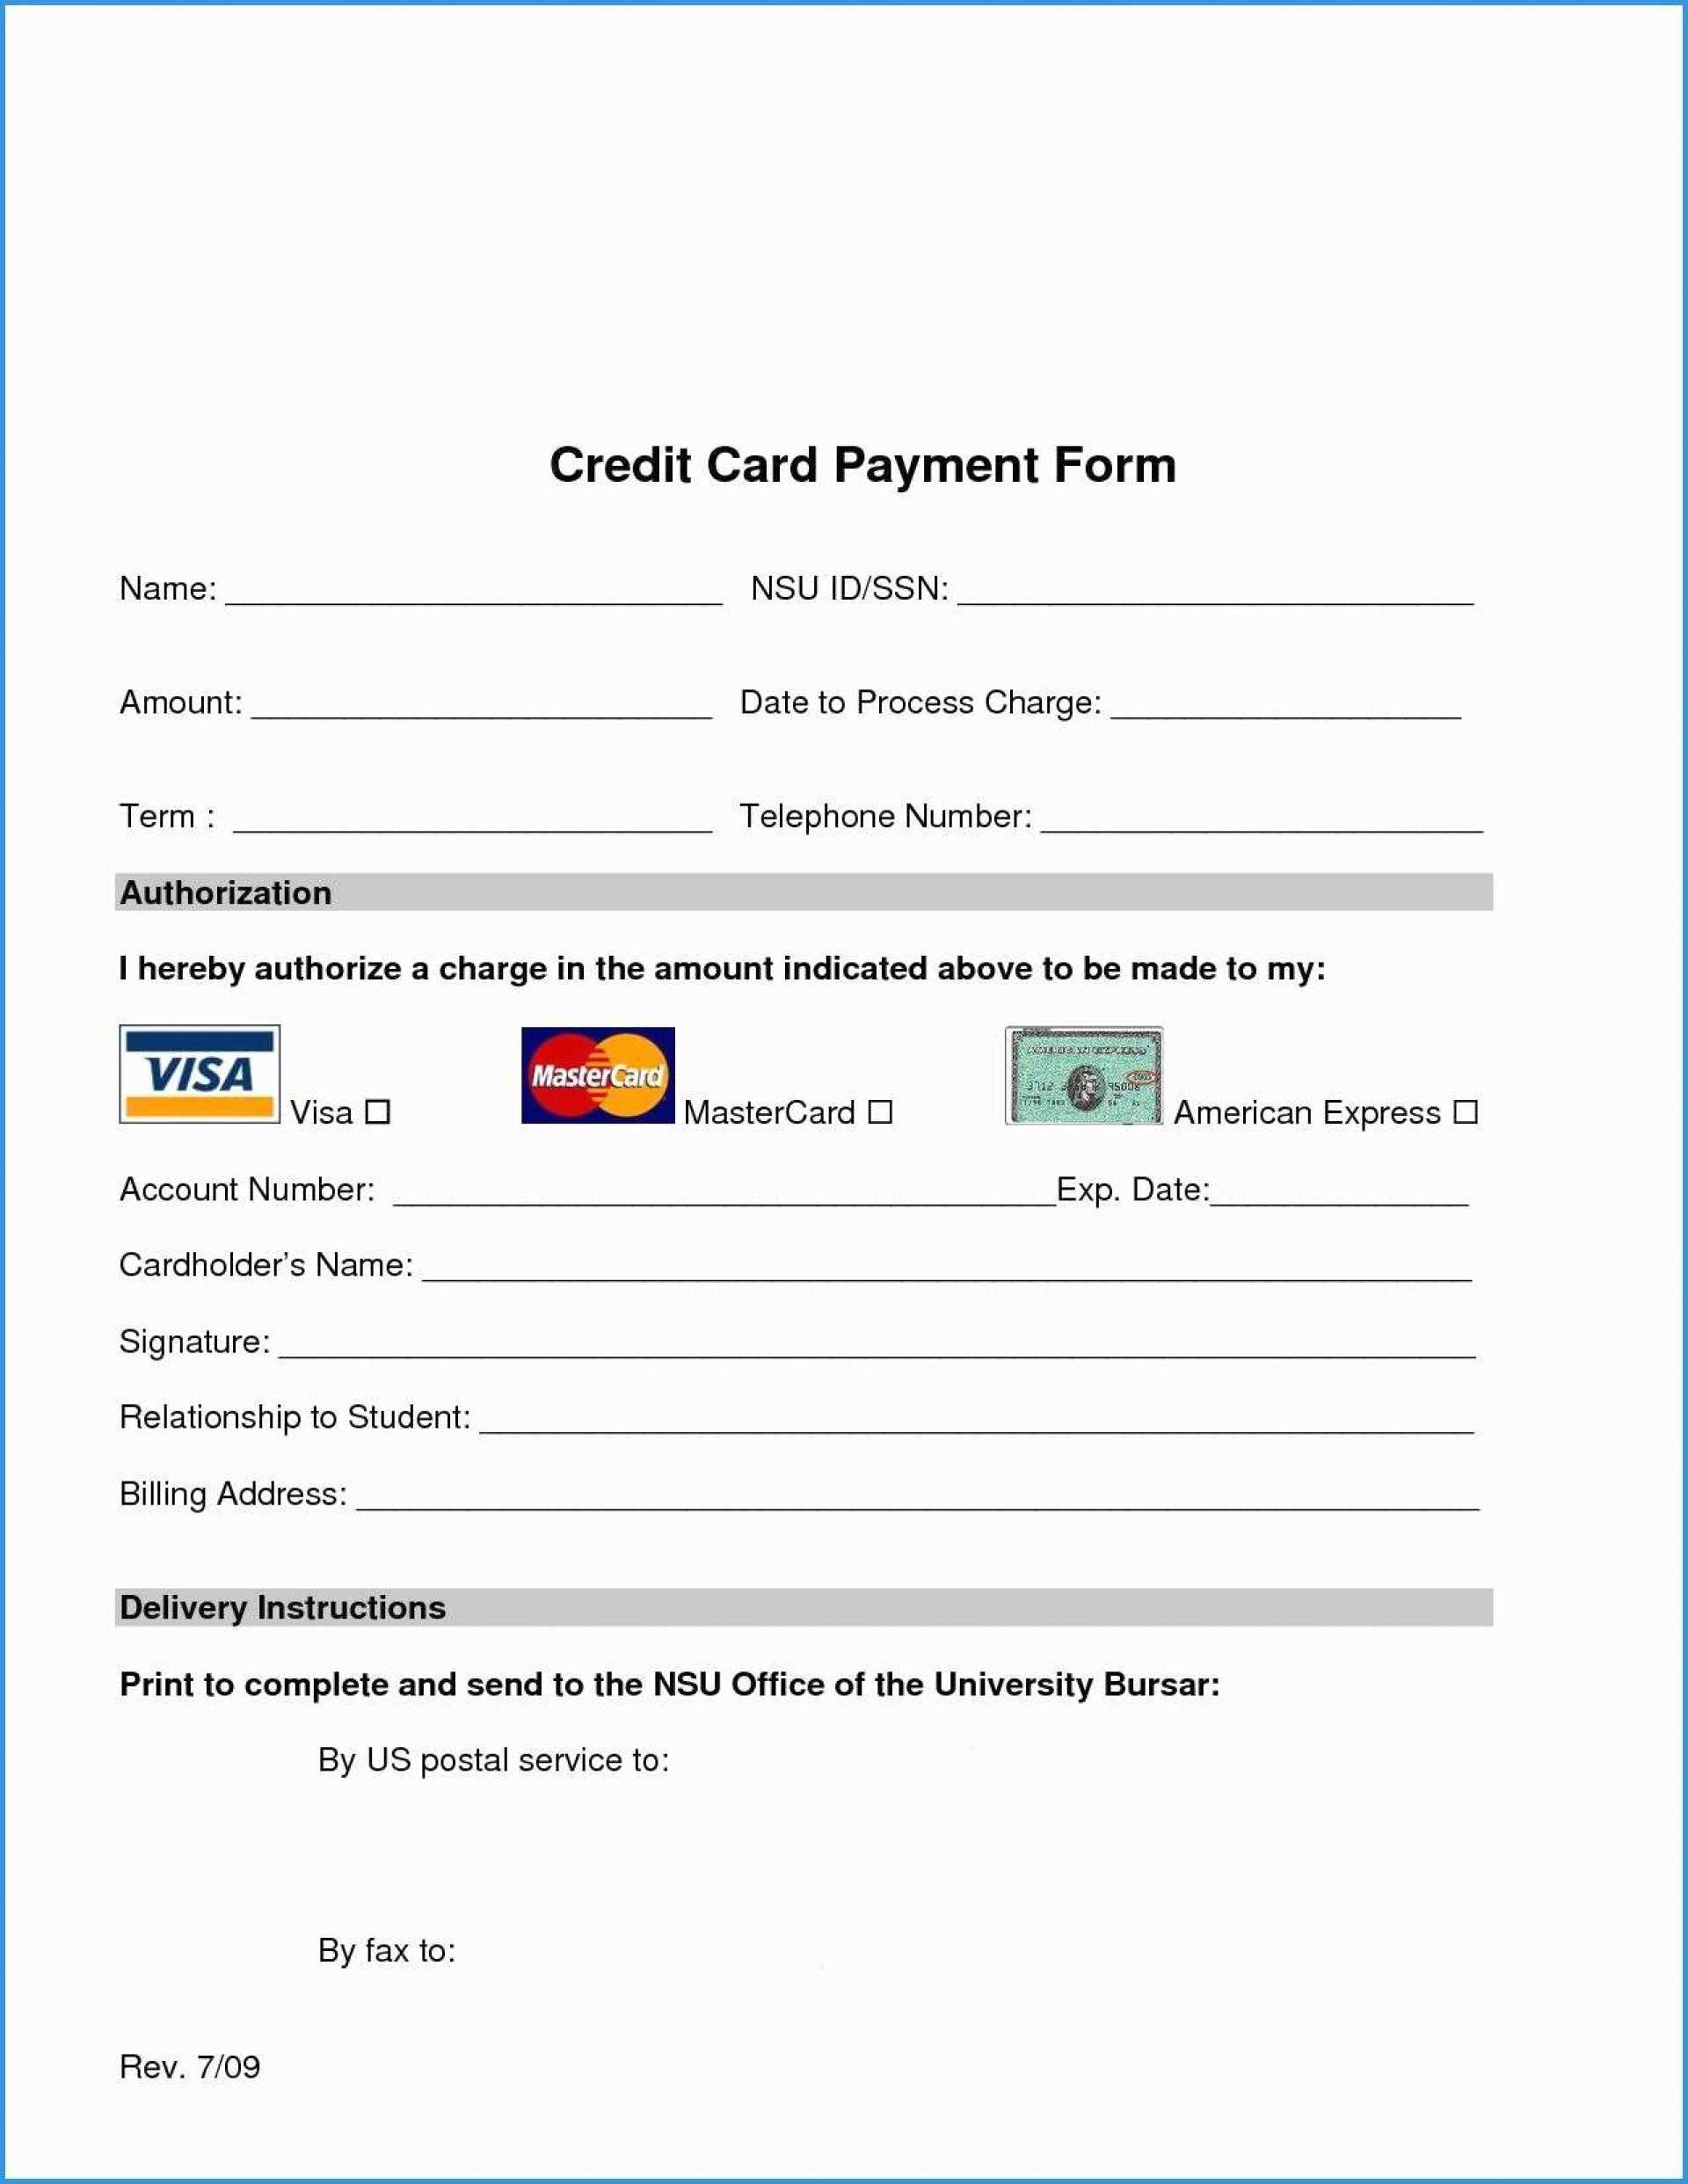 024 Credit Card Authorization Form Template Free Printable Intended For Credit Card Billing Authorization Form Template